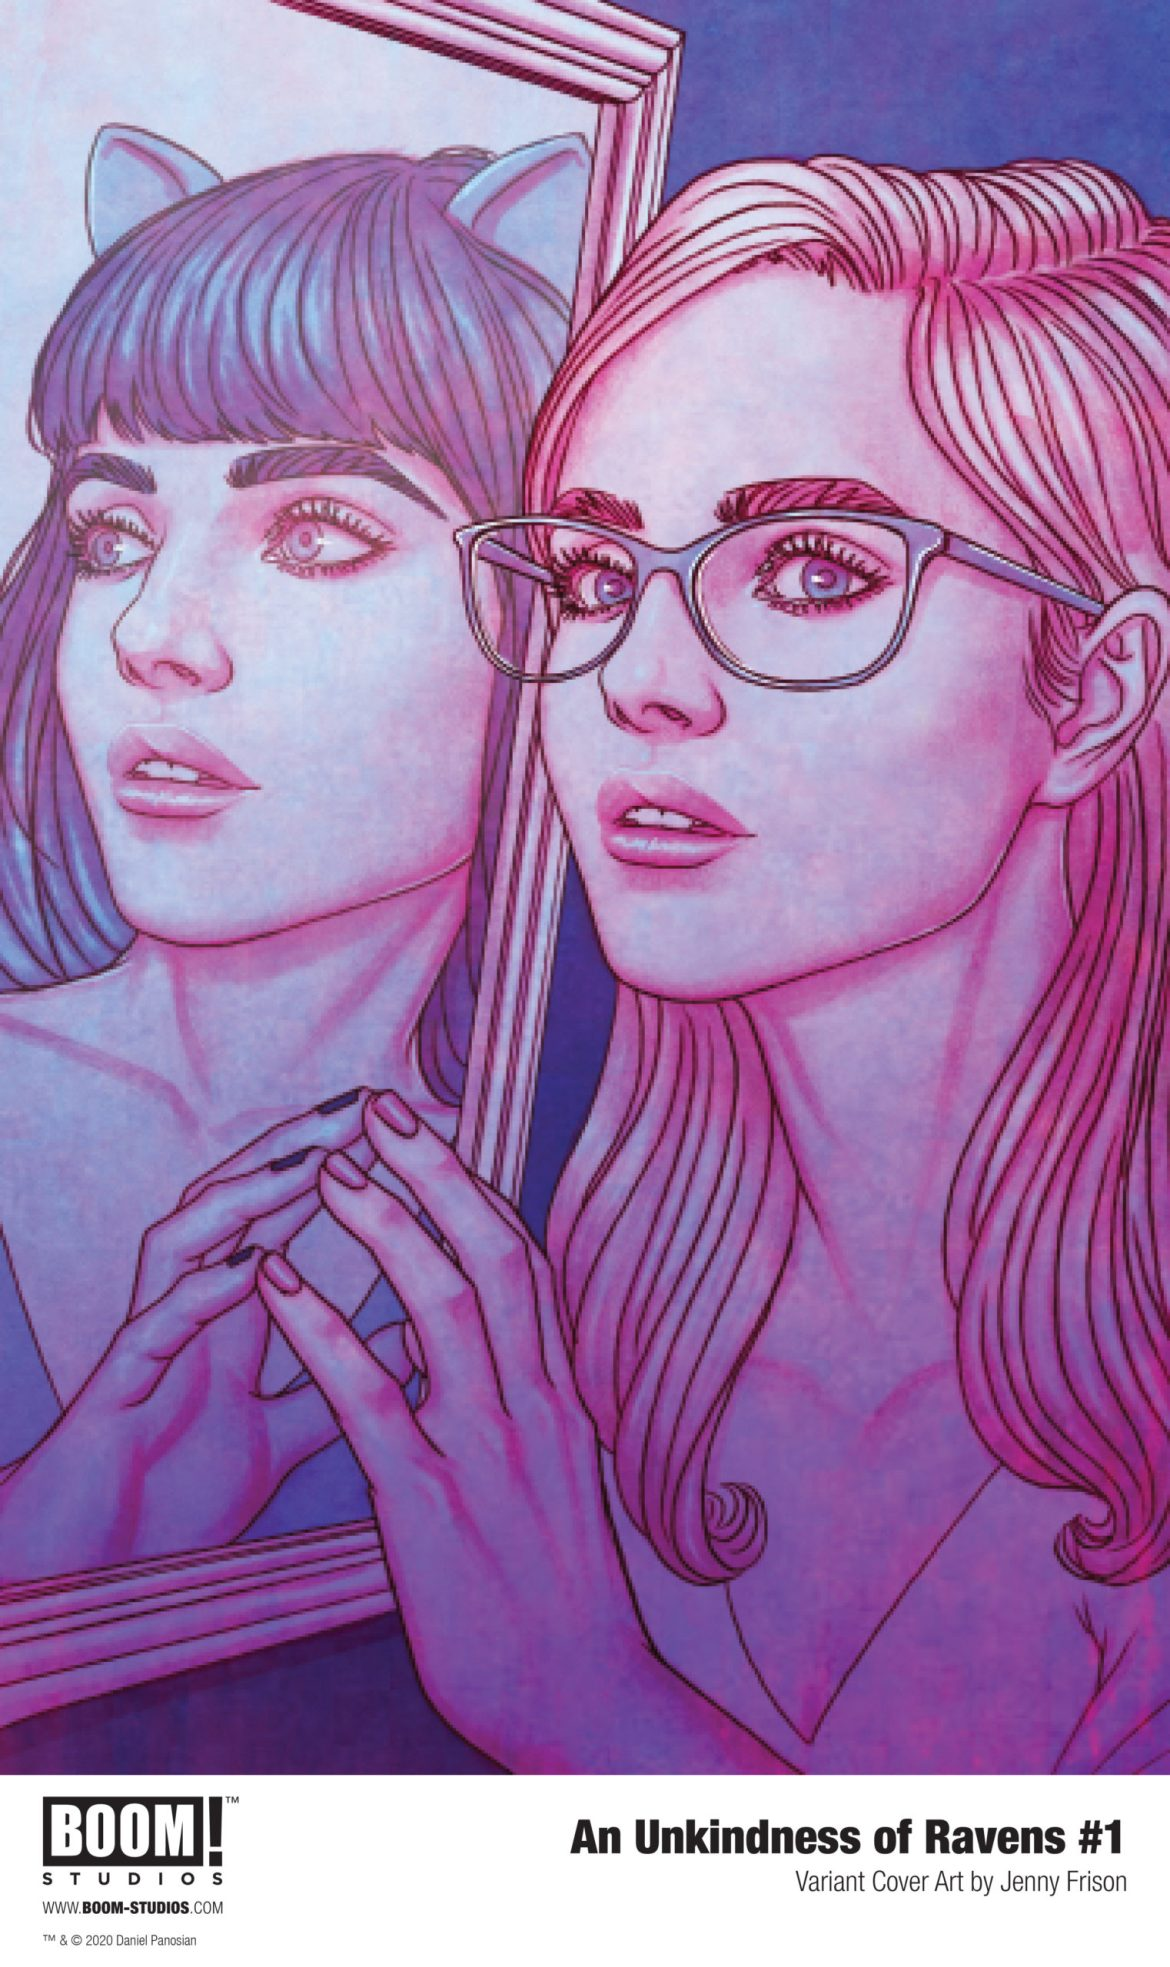 f9ae8f95-841e-4943-82a9-f0e4f3b6ad36-scaled BOOM! Studios signs Jenny Frison to a variant cover deal